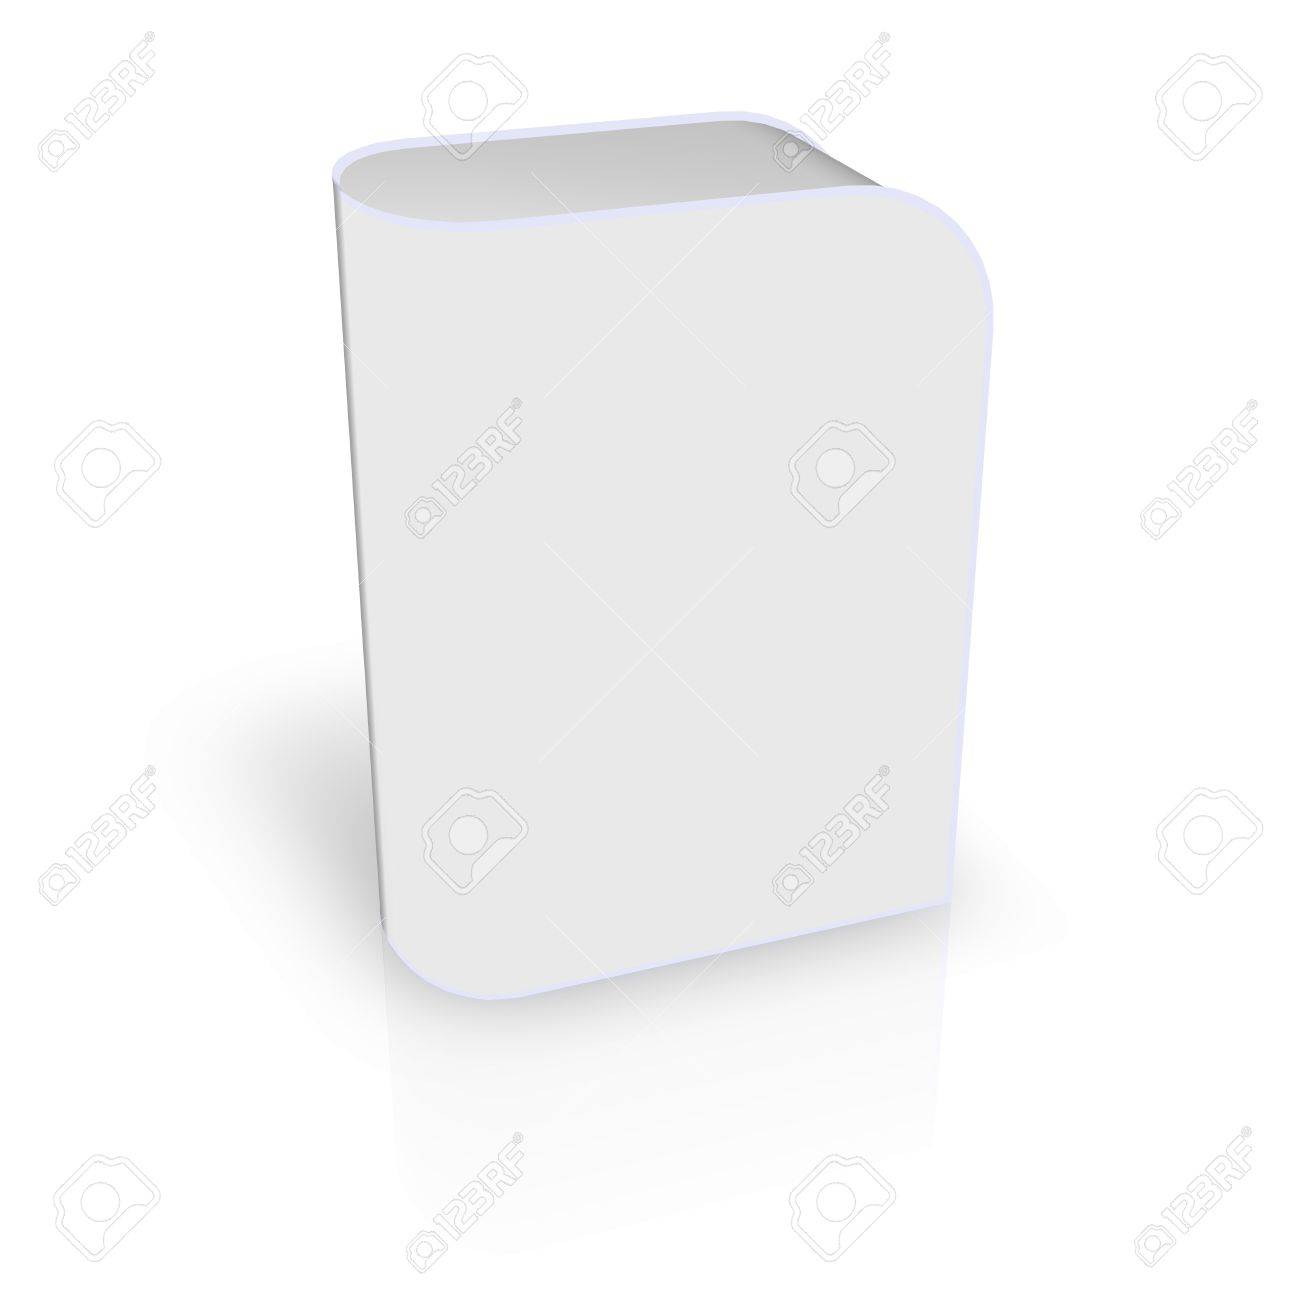 Box for Software Products Stock Photo - 3986674